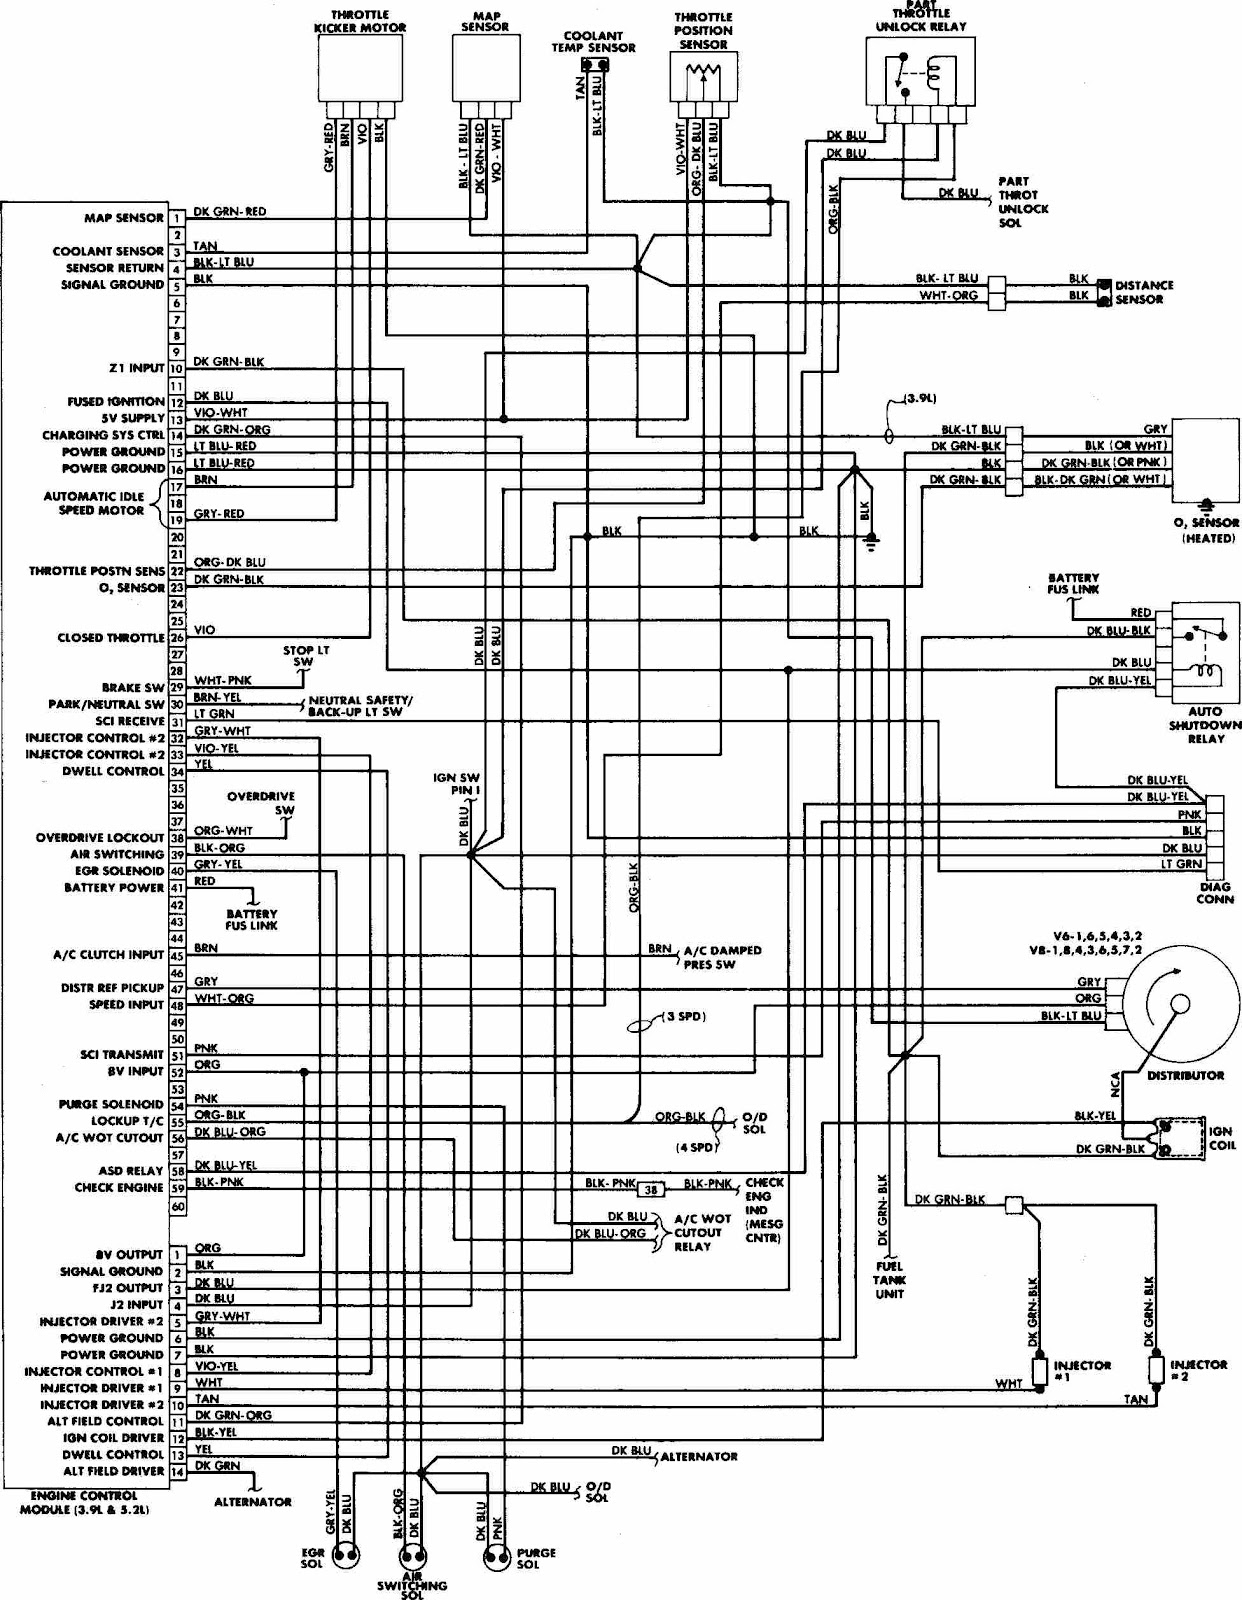 International 806 Wiring Diagram Free Picture